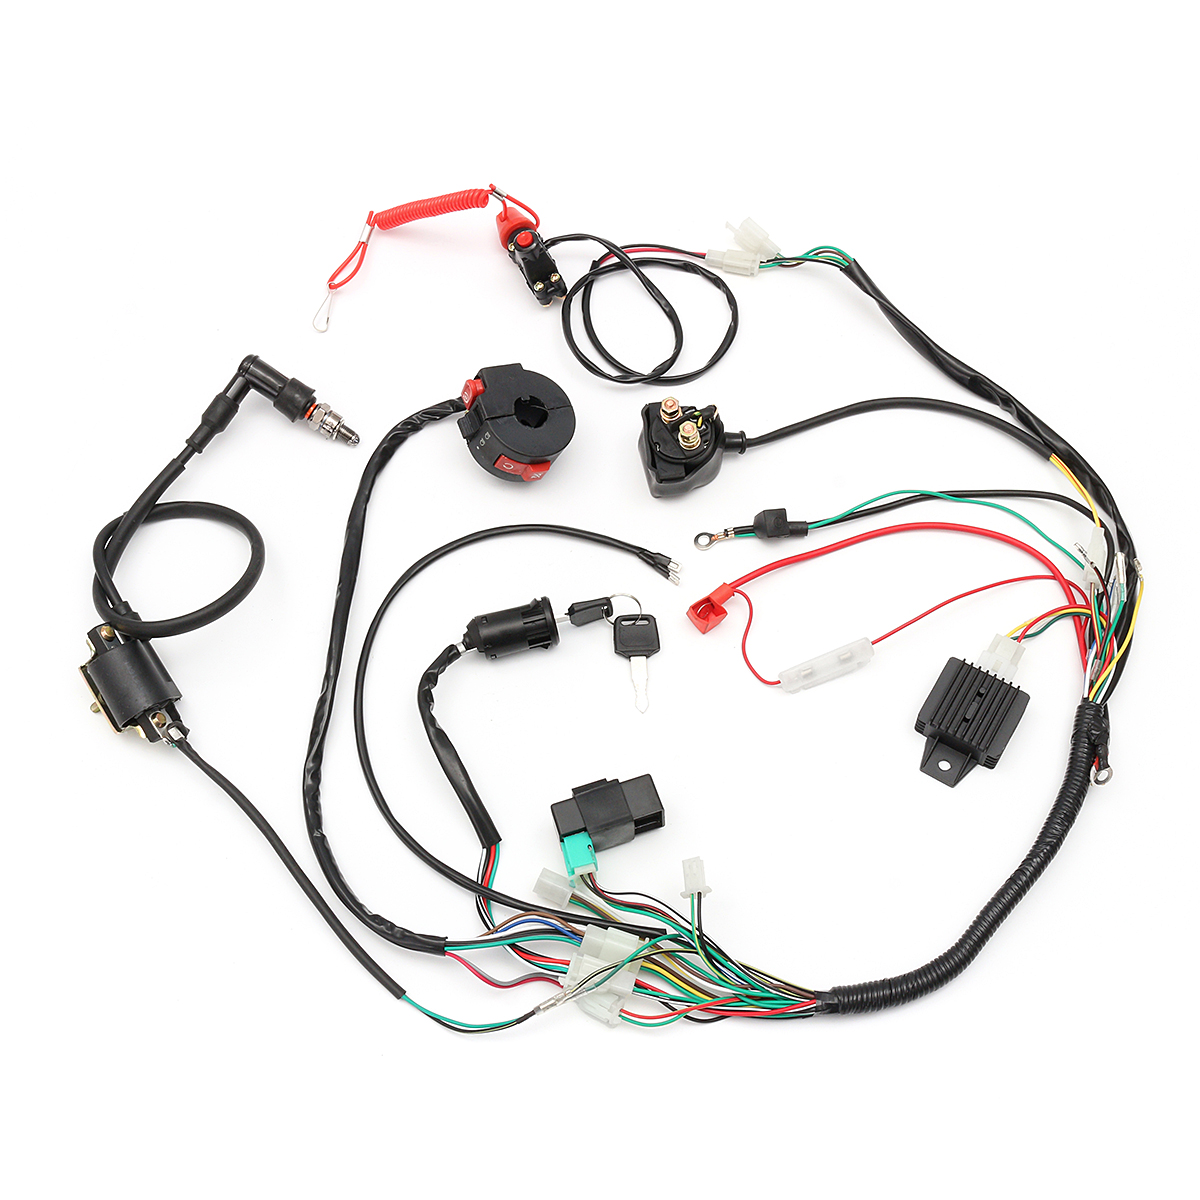 hight resolution of  comes with regulator 4 wire ignition key ignition coil 5 pin cdi unit kill start light choke switch housing spark plug solenoid emergency safety